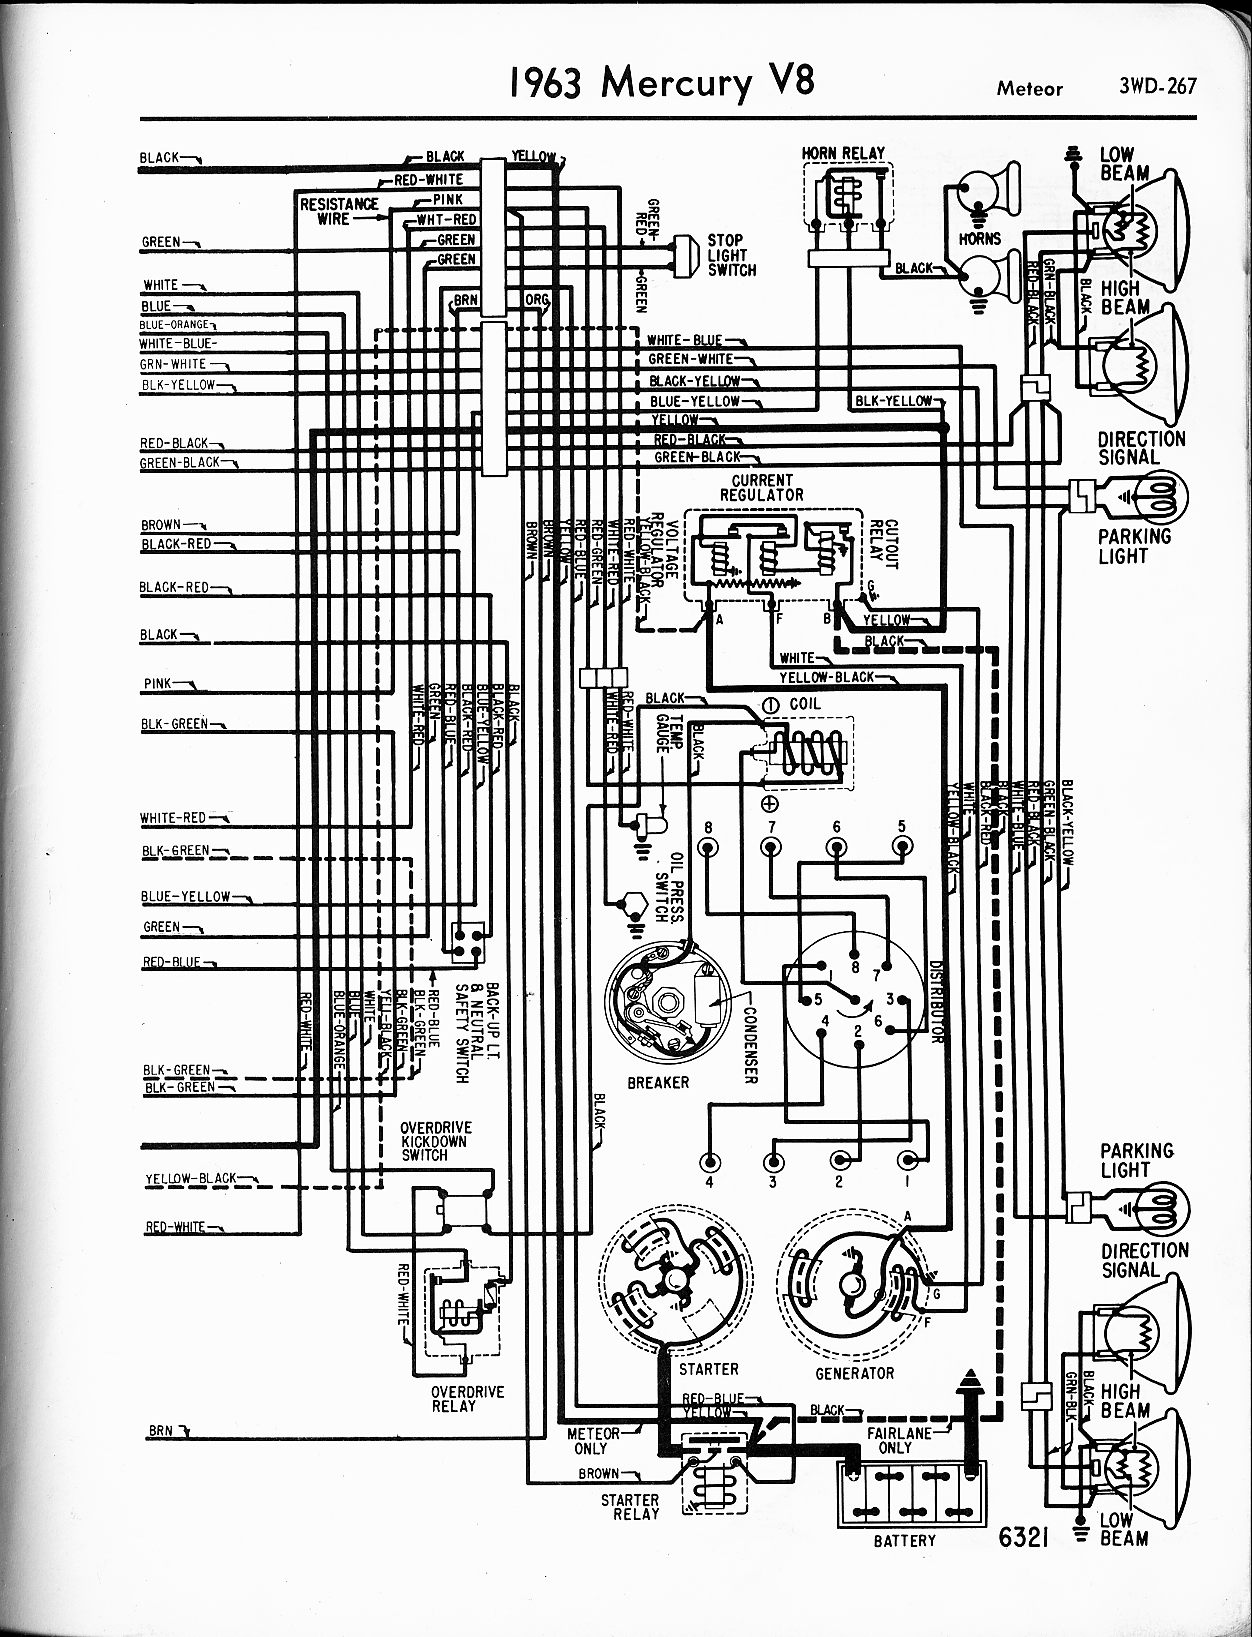 62 Nova Wiring Diagram Automotive 1963 Impala Wire Harness 66 Chevy Library Rh 94 Codingcommunity De 74